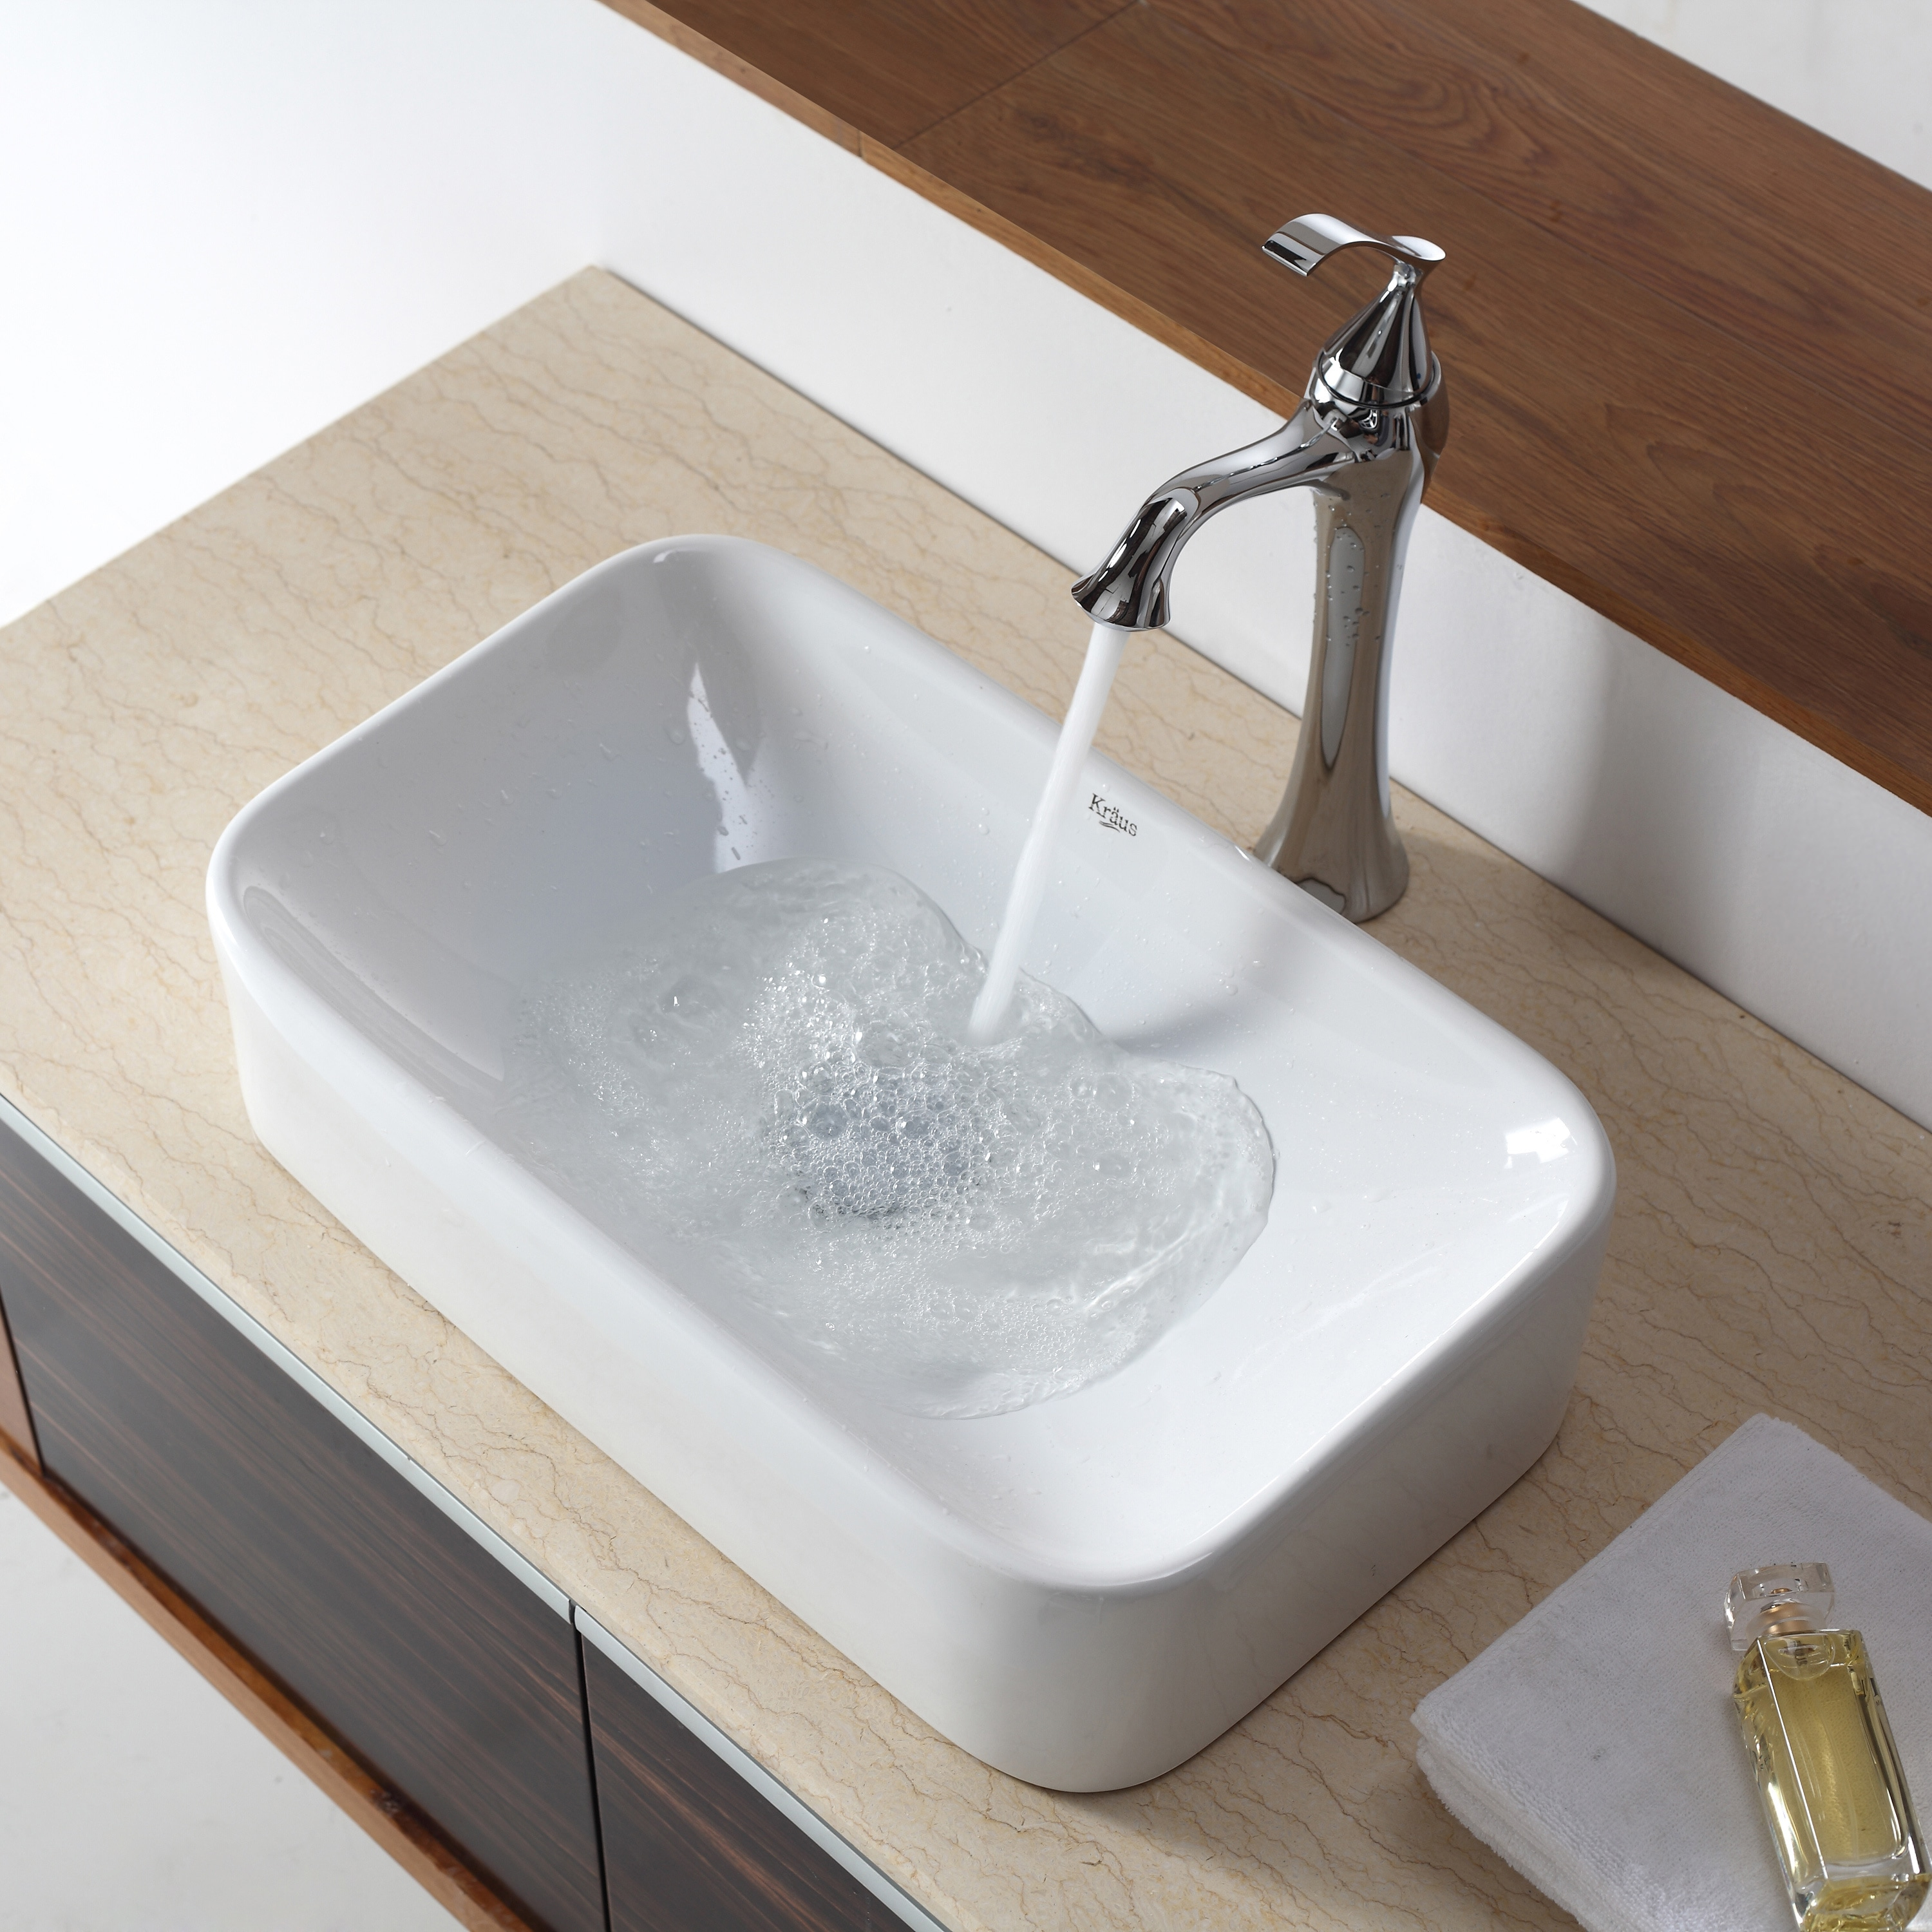 ... Vessel Sink - Overstock Shopping - Great Deals on Kraus Bathroom Sinks